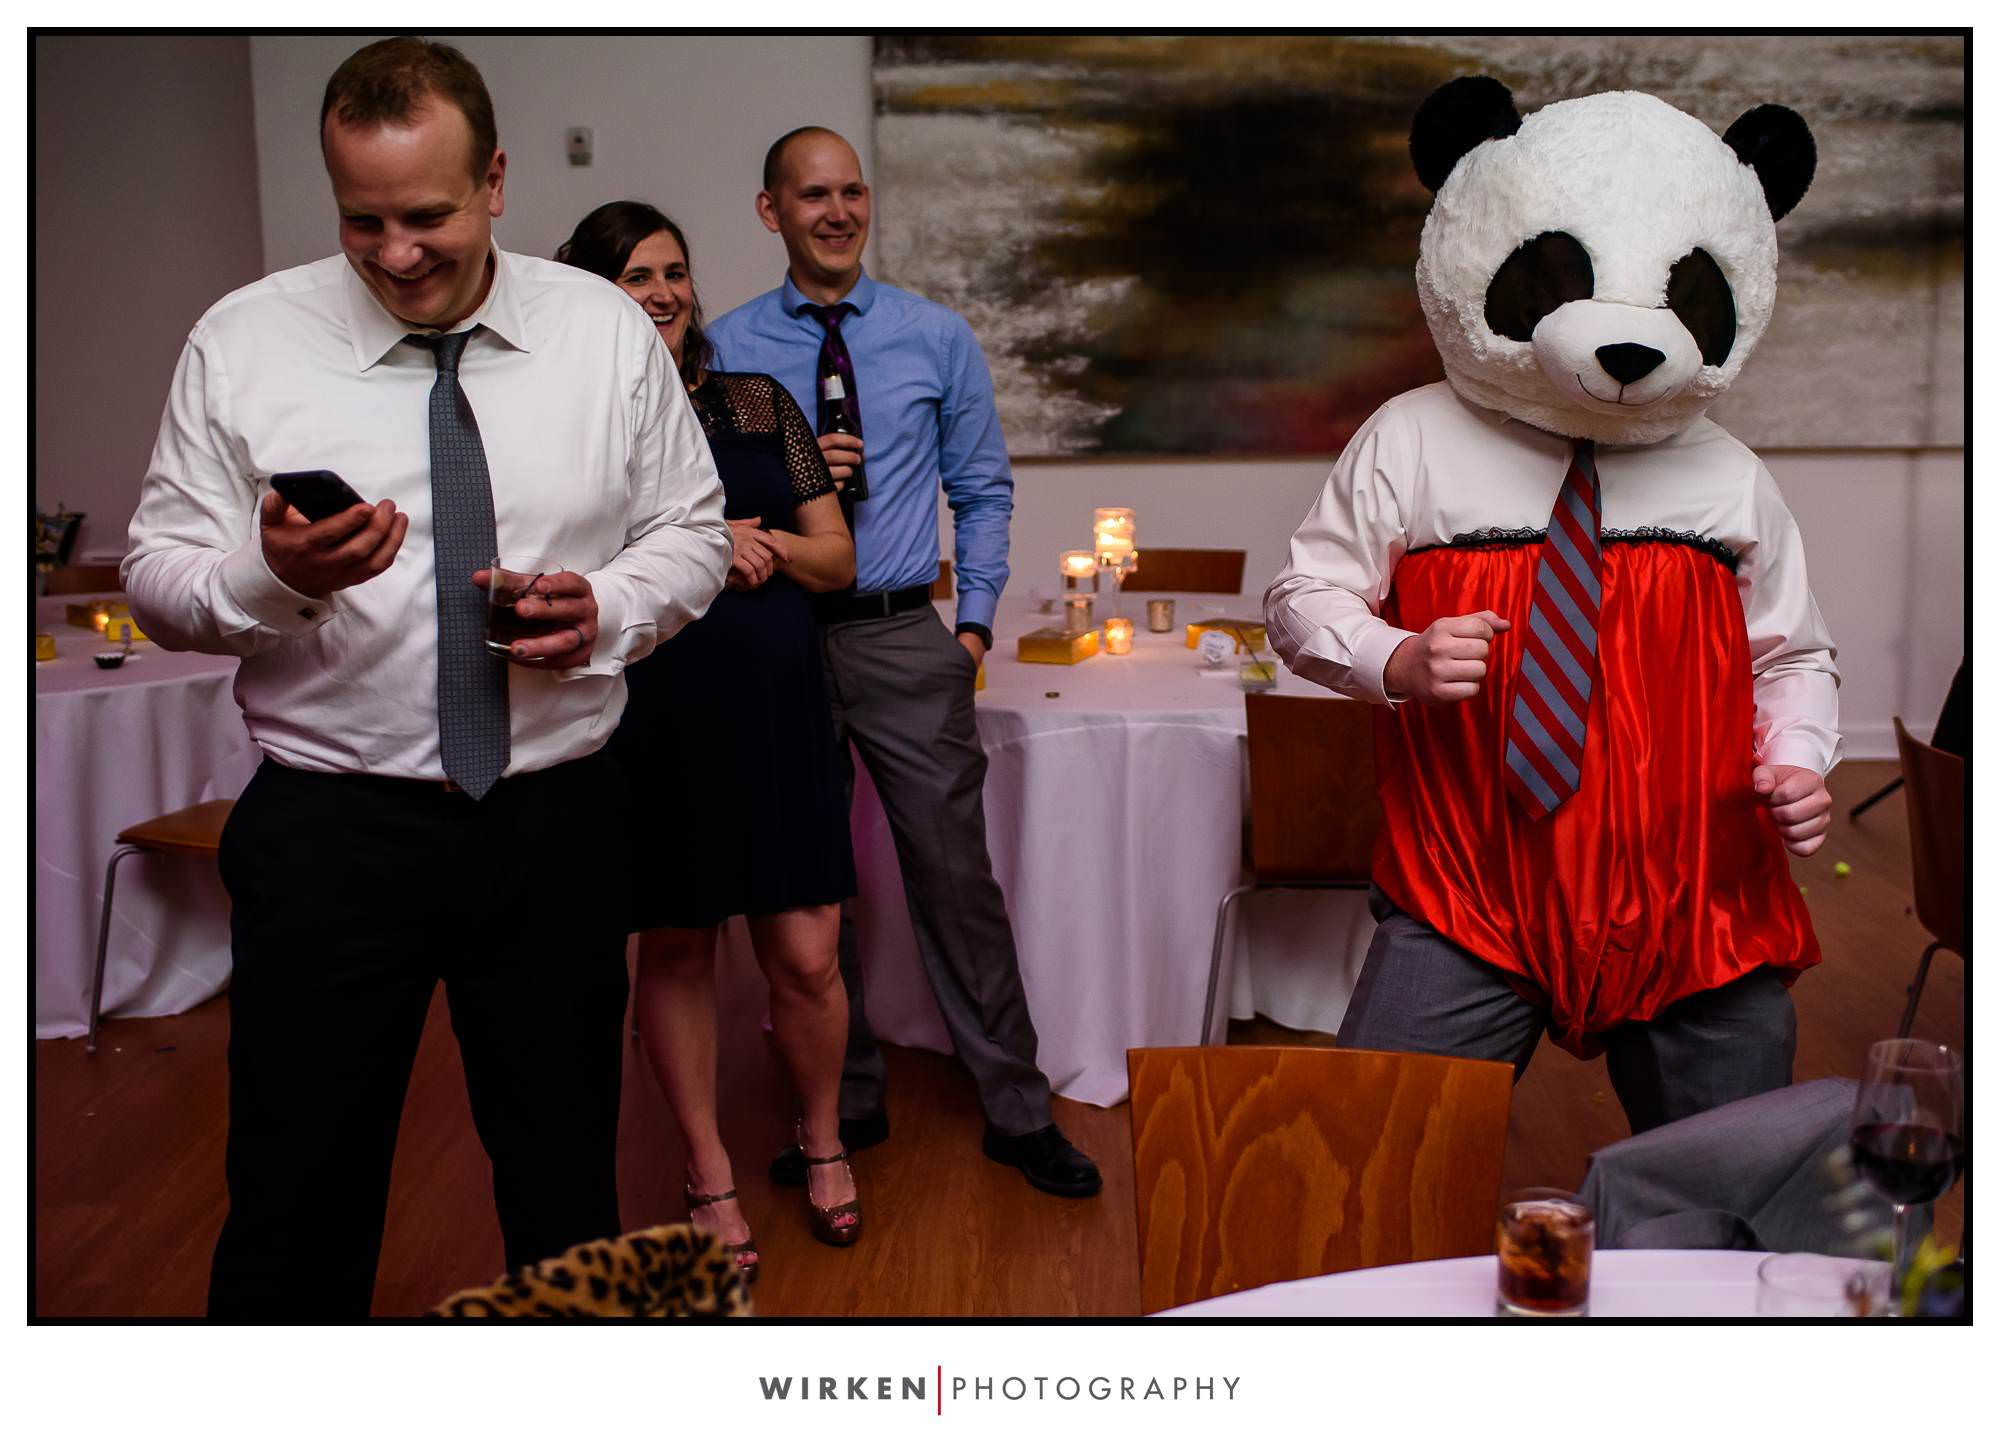 A panda costume at Leah and Ryans The Gallery Center Wedding Reception